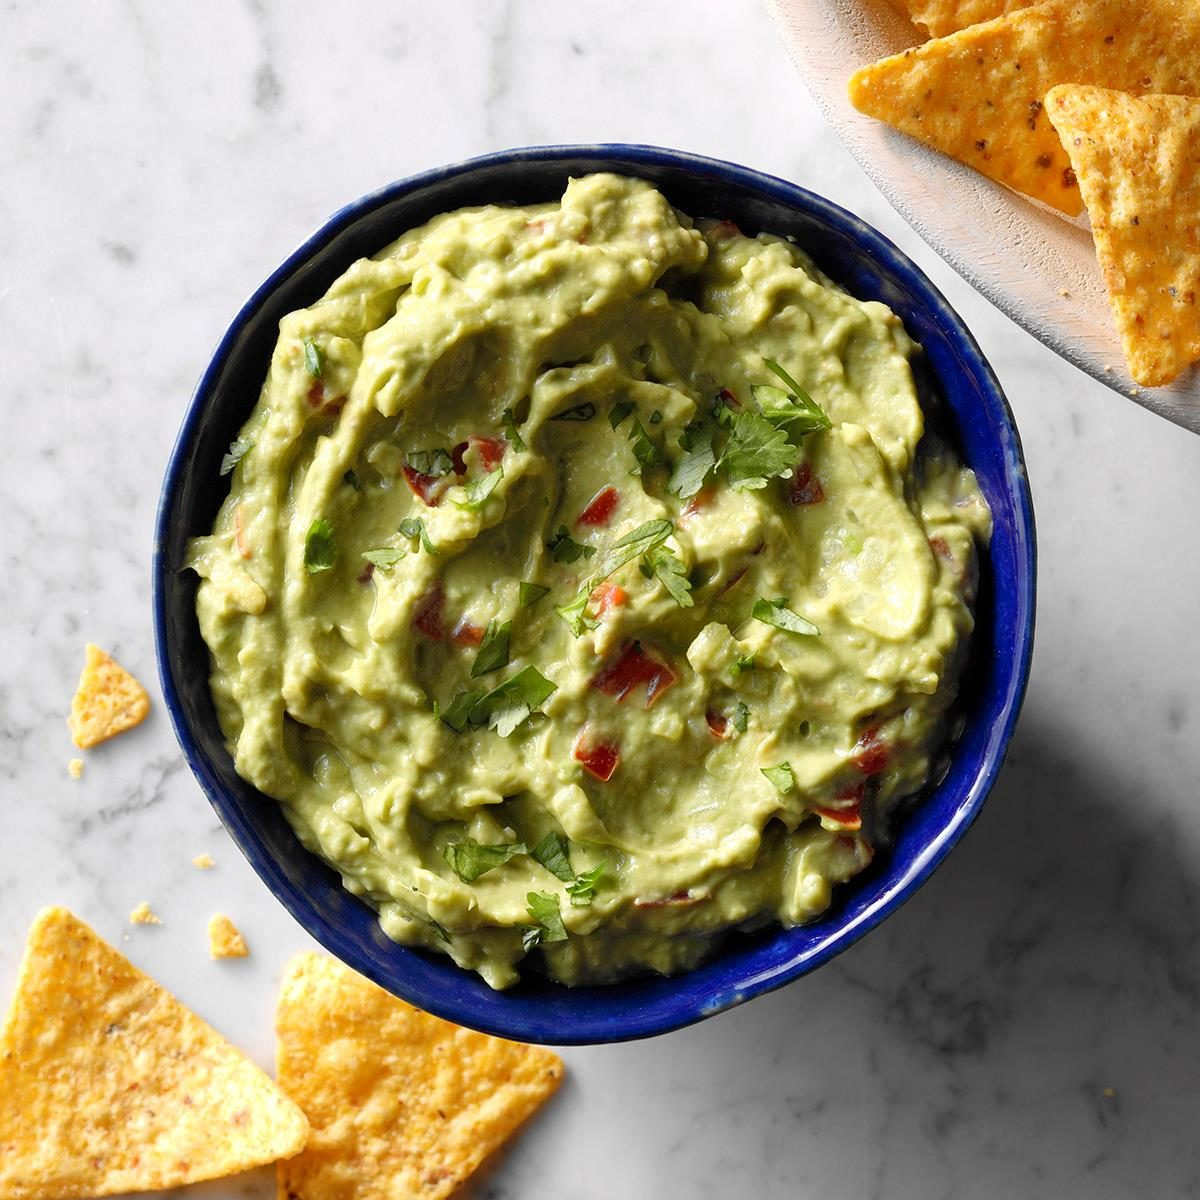 Inspired by: Chipotle Guacamole and Chips